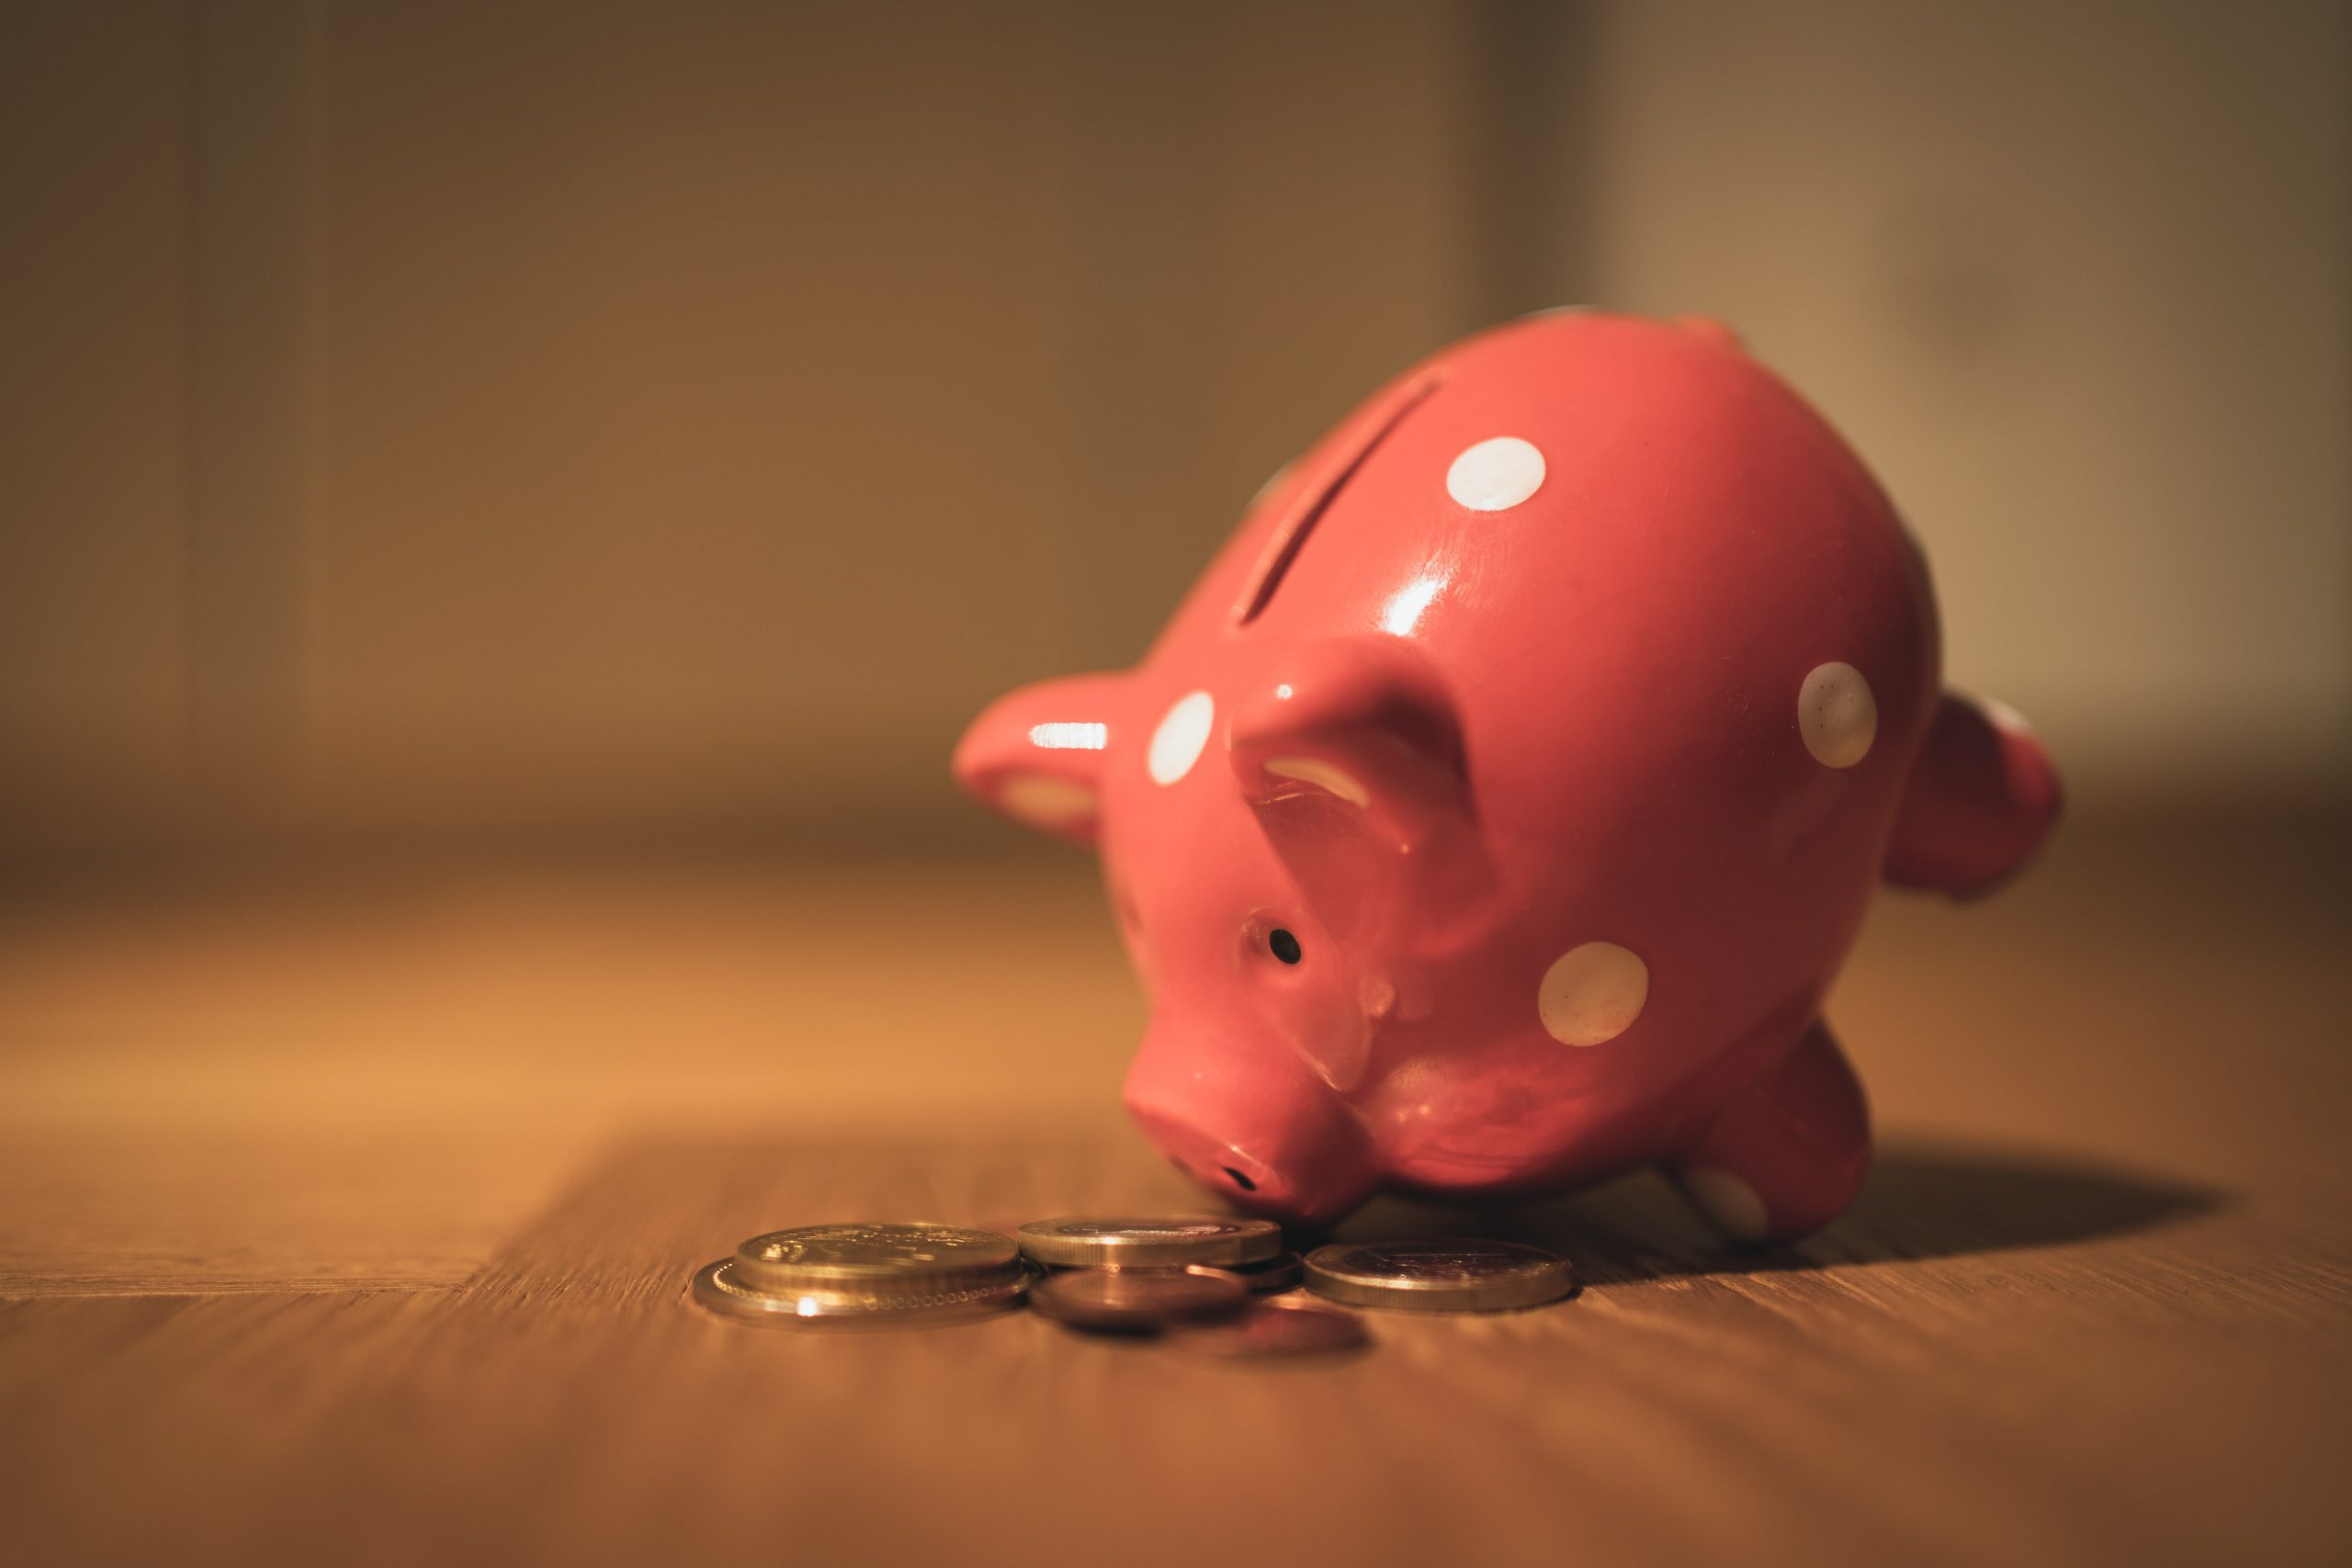 Coins and a piggy bank to represent cost savings from using salary advances